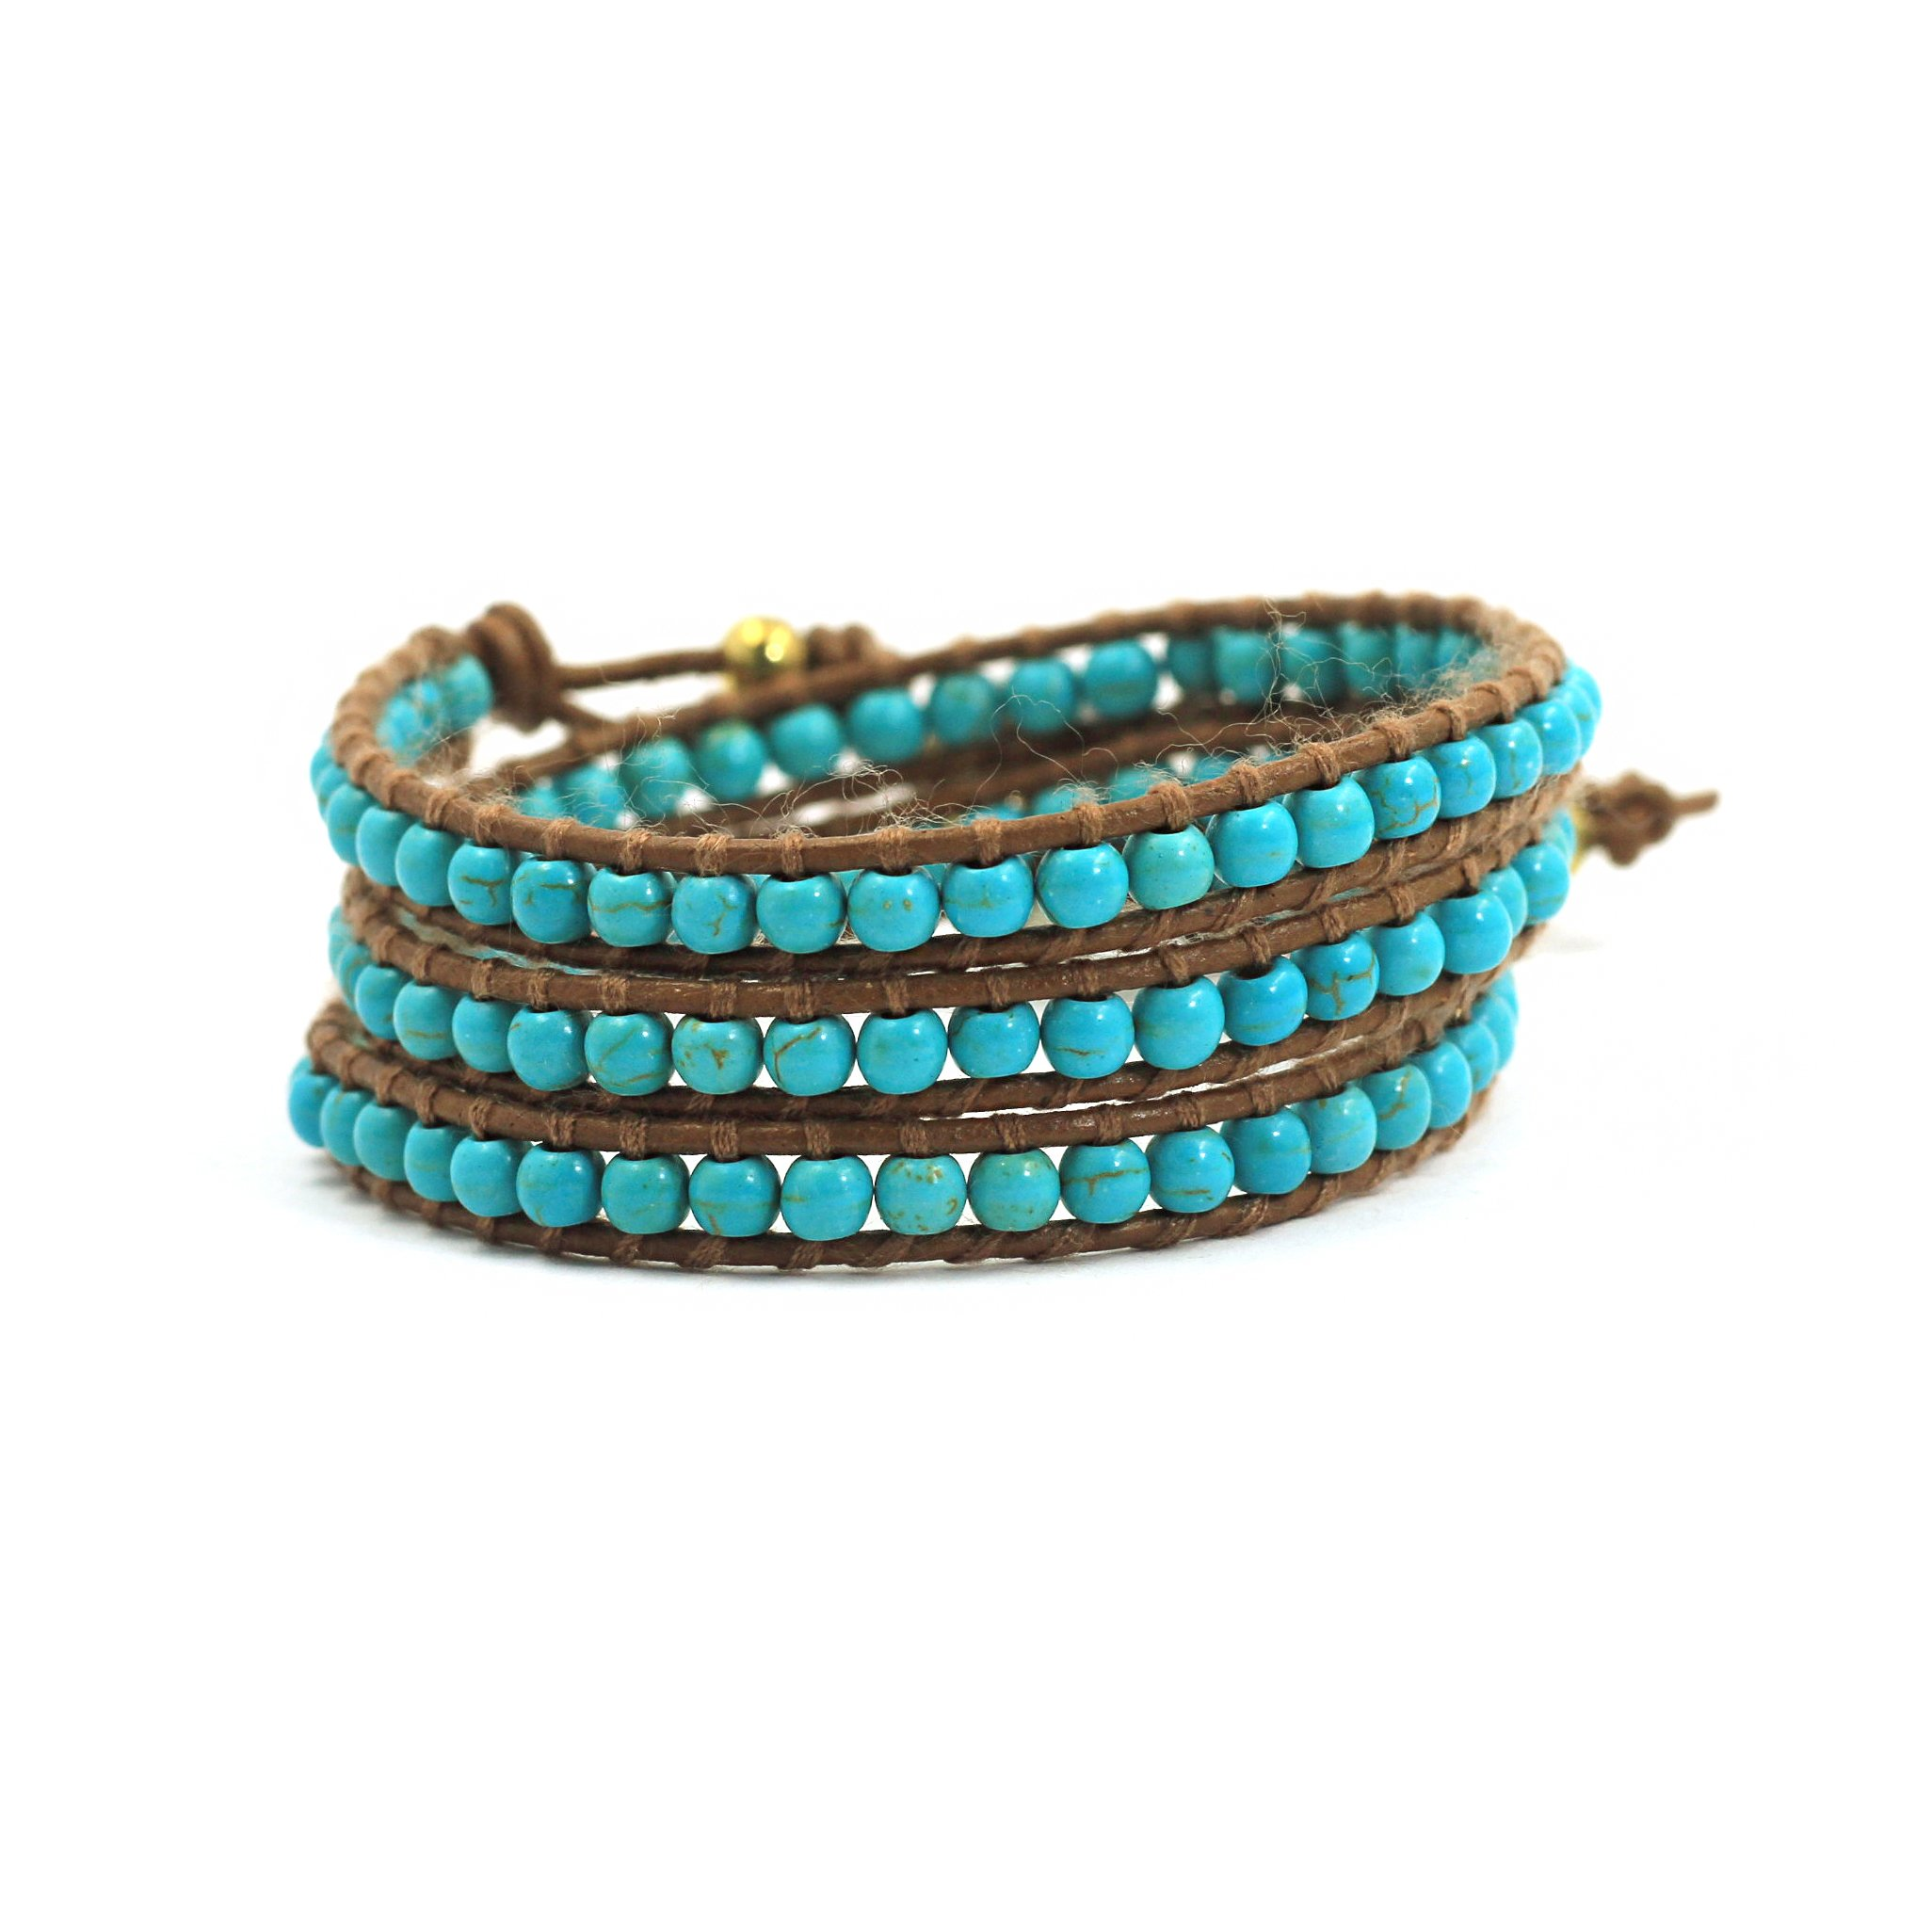 tom+alice Womens Natural Turquoise Jewelry,Genuine Leather Bracelets 3 Wraps Cuff Bracelet for Girls